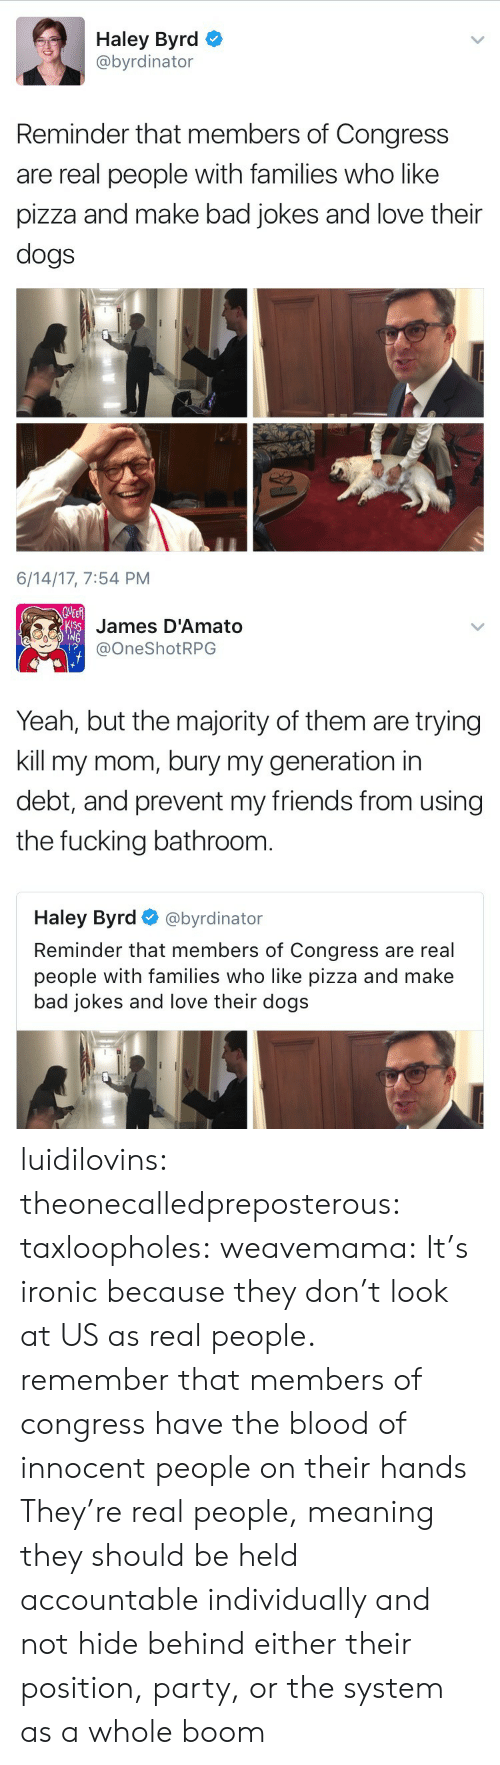 Bad jokes: Haley Byrd  @byrdinator  Reminder that members of Congress  are real people with families who like  pizza and make bad jokes and love their  dogs  6/14/17, 7:54 PM   James D'Amato  @OneShotRPG  1?  Yeah, but the majority of them are trying  kill my mom, bury my generation in  debt, and prevent my friends from using  the fucking bathroonm  Haley Byrd@byrdinator  Reminder that members of Congress are real  people with families who like pizza and make  bad jokes and love their dogs luidilovins: theonecalledpreposterous:   taxloopholes:  weavemama: It's ironic because they don't look at US as real people.  remember that members of congress have the blood of innocent people on their hands   They're real people, meaning they should be held accountable individually and not hide behind either their position, party, or the system as a whole   boom